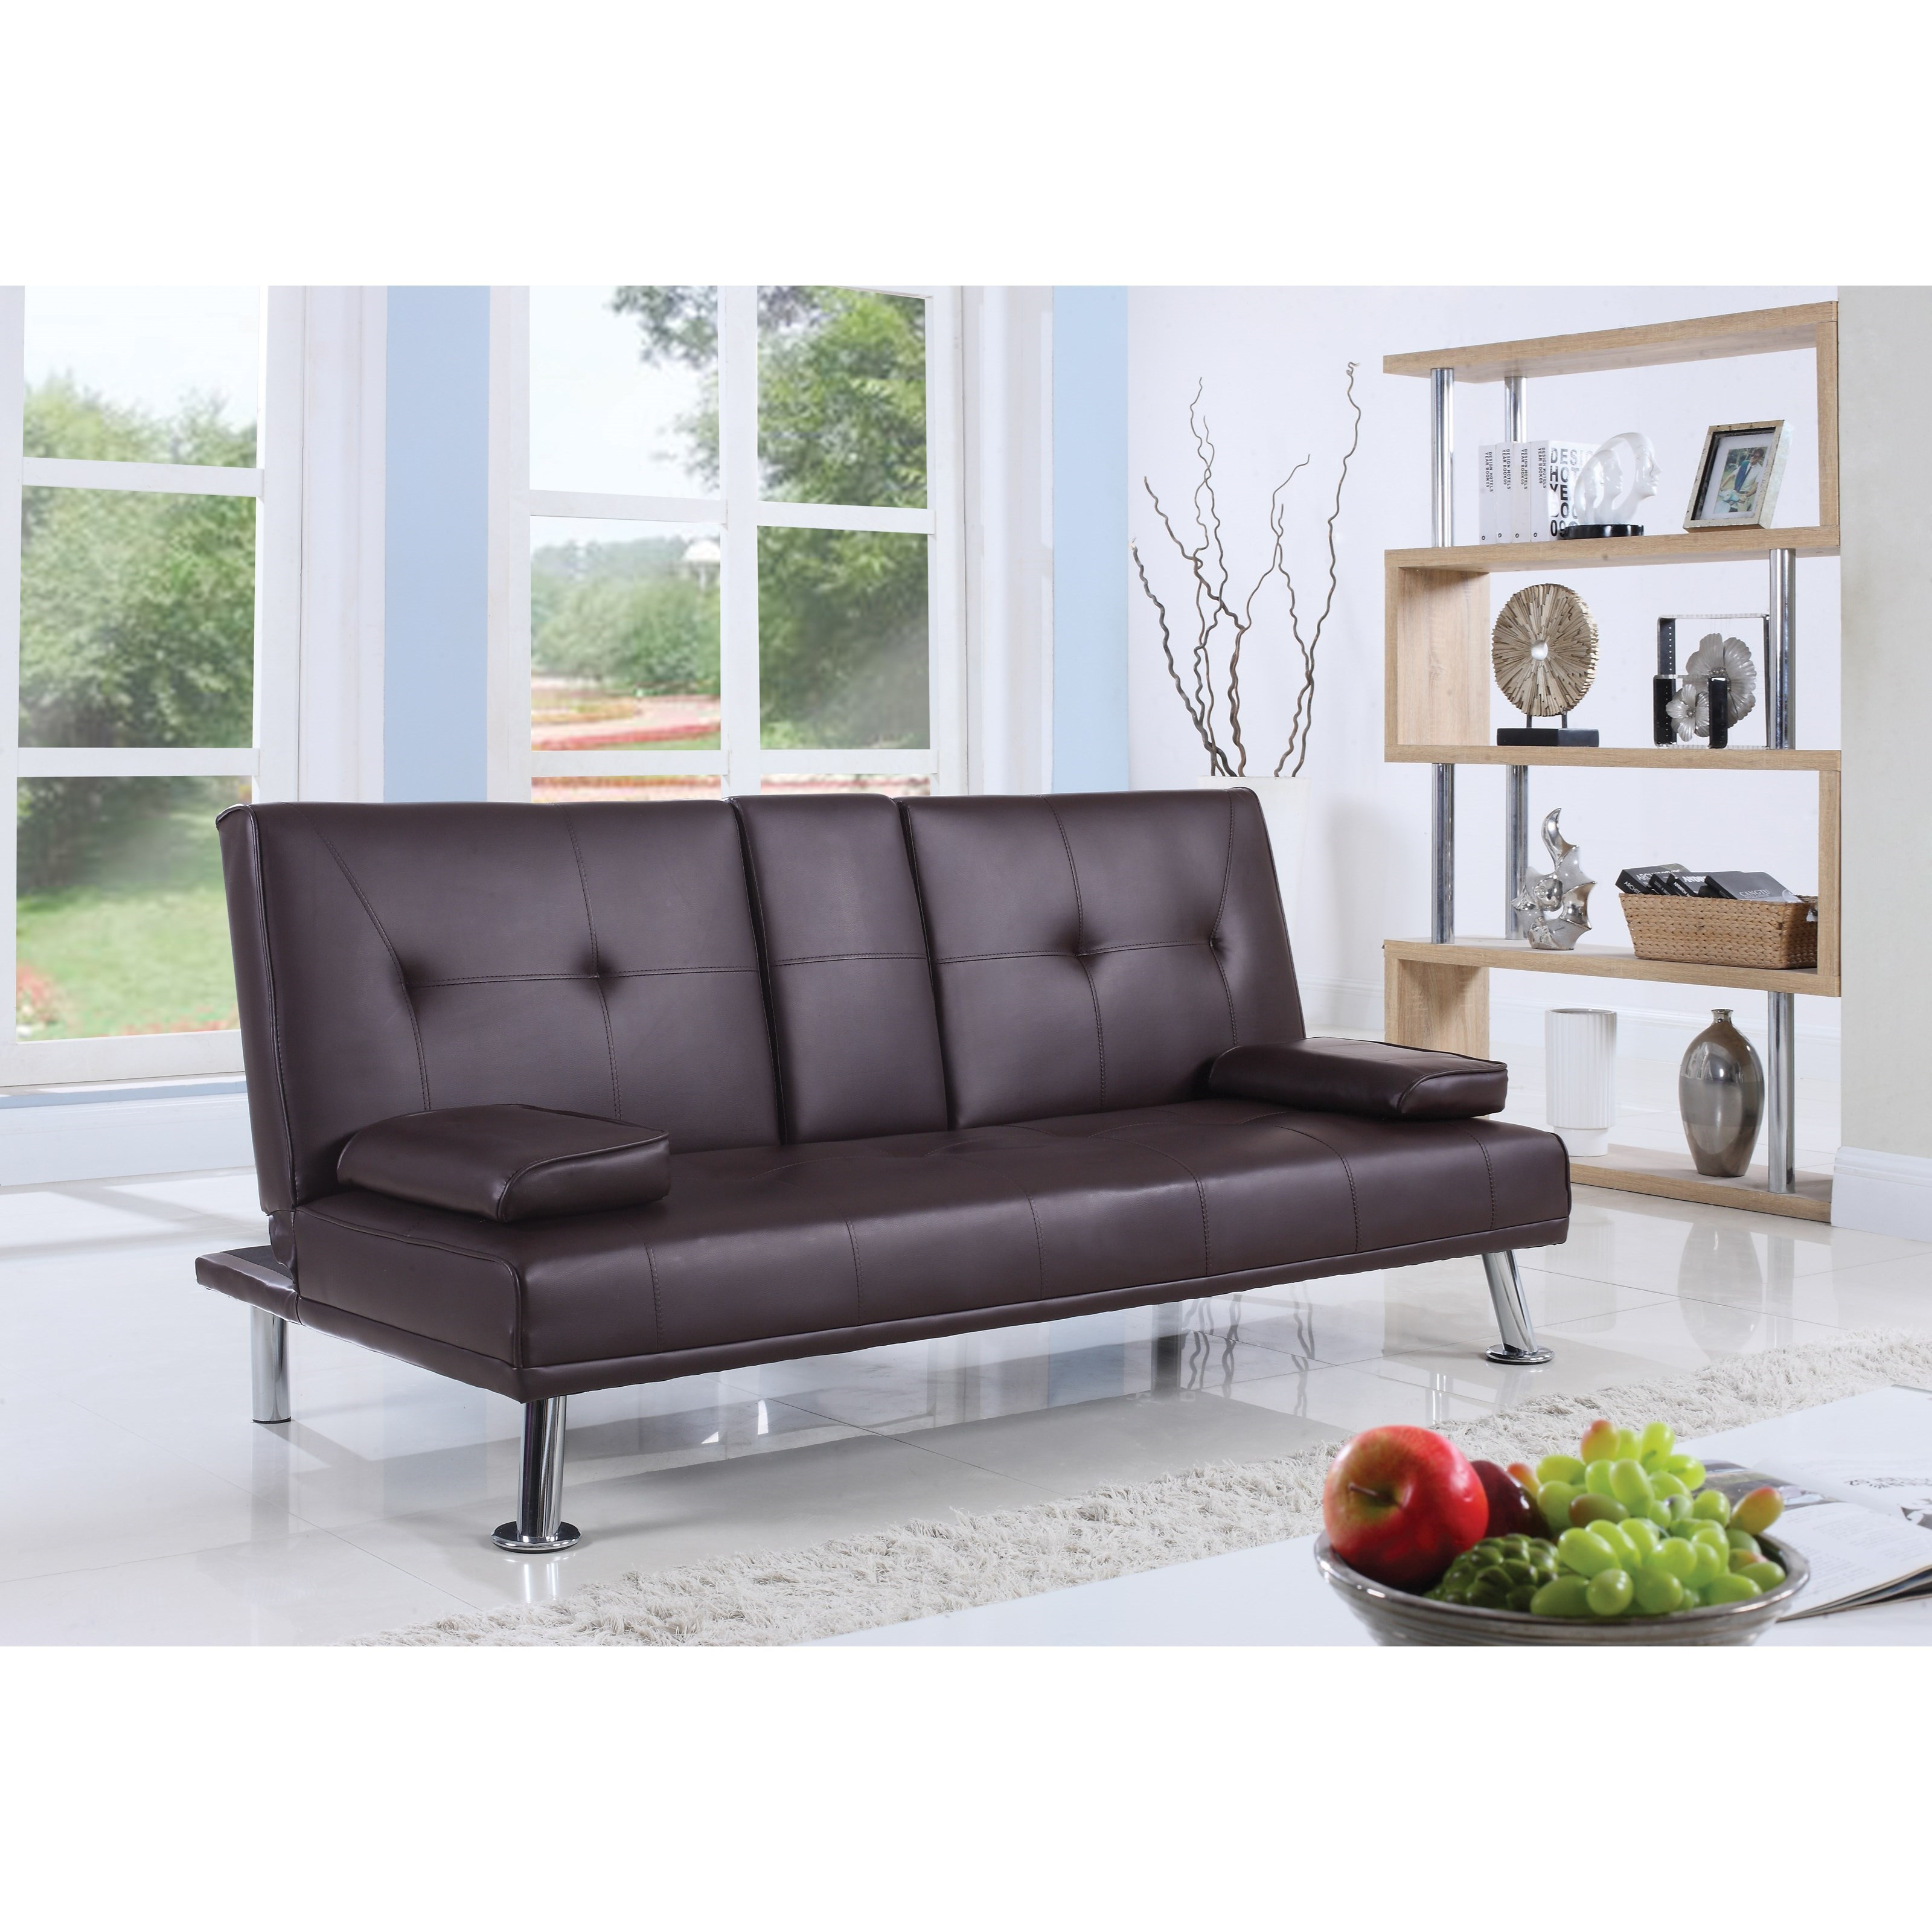 coaster futons 300692 leatherette sofa bed with center console   lapeer furniture  u0026 mattress center   futons coaster futons 300692 leatherette sofa bed with center console      rh   lapeerfurnitureandmattress